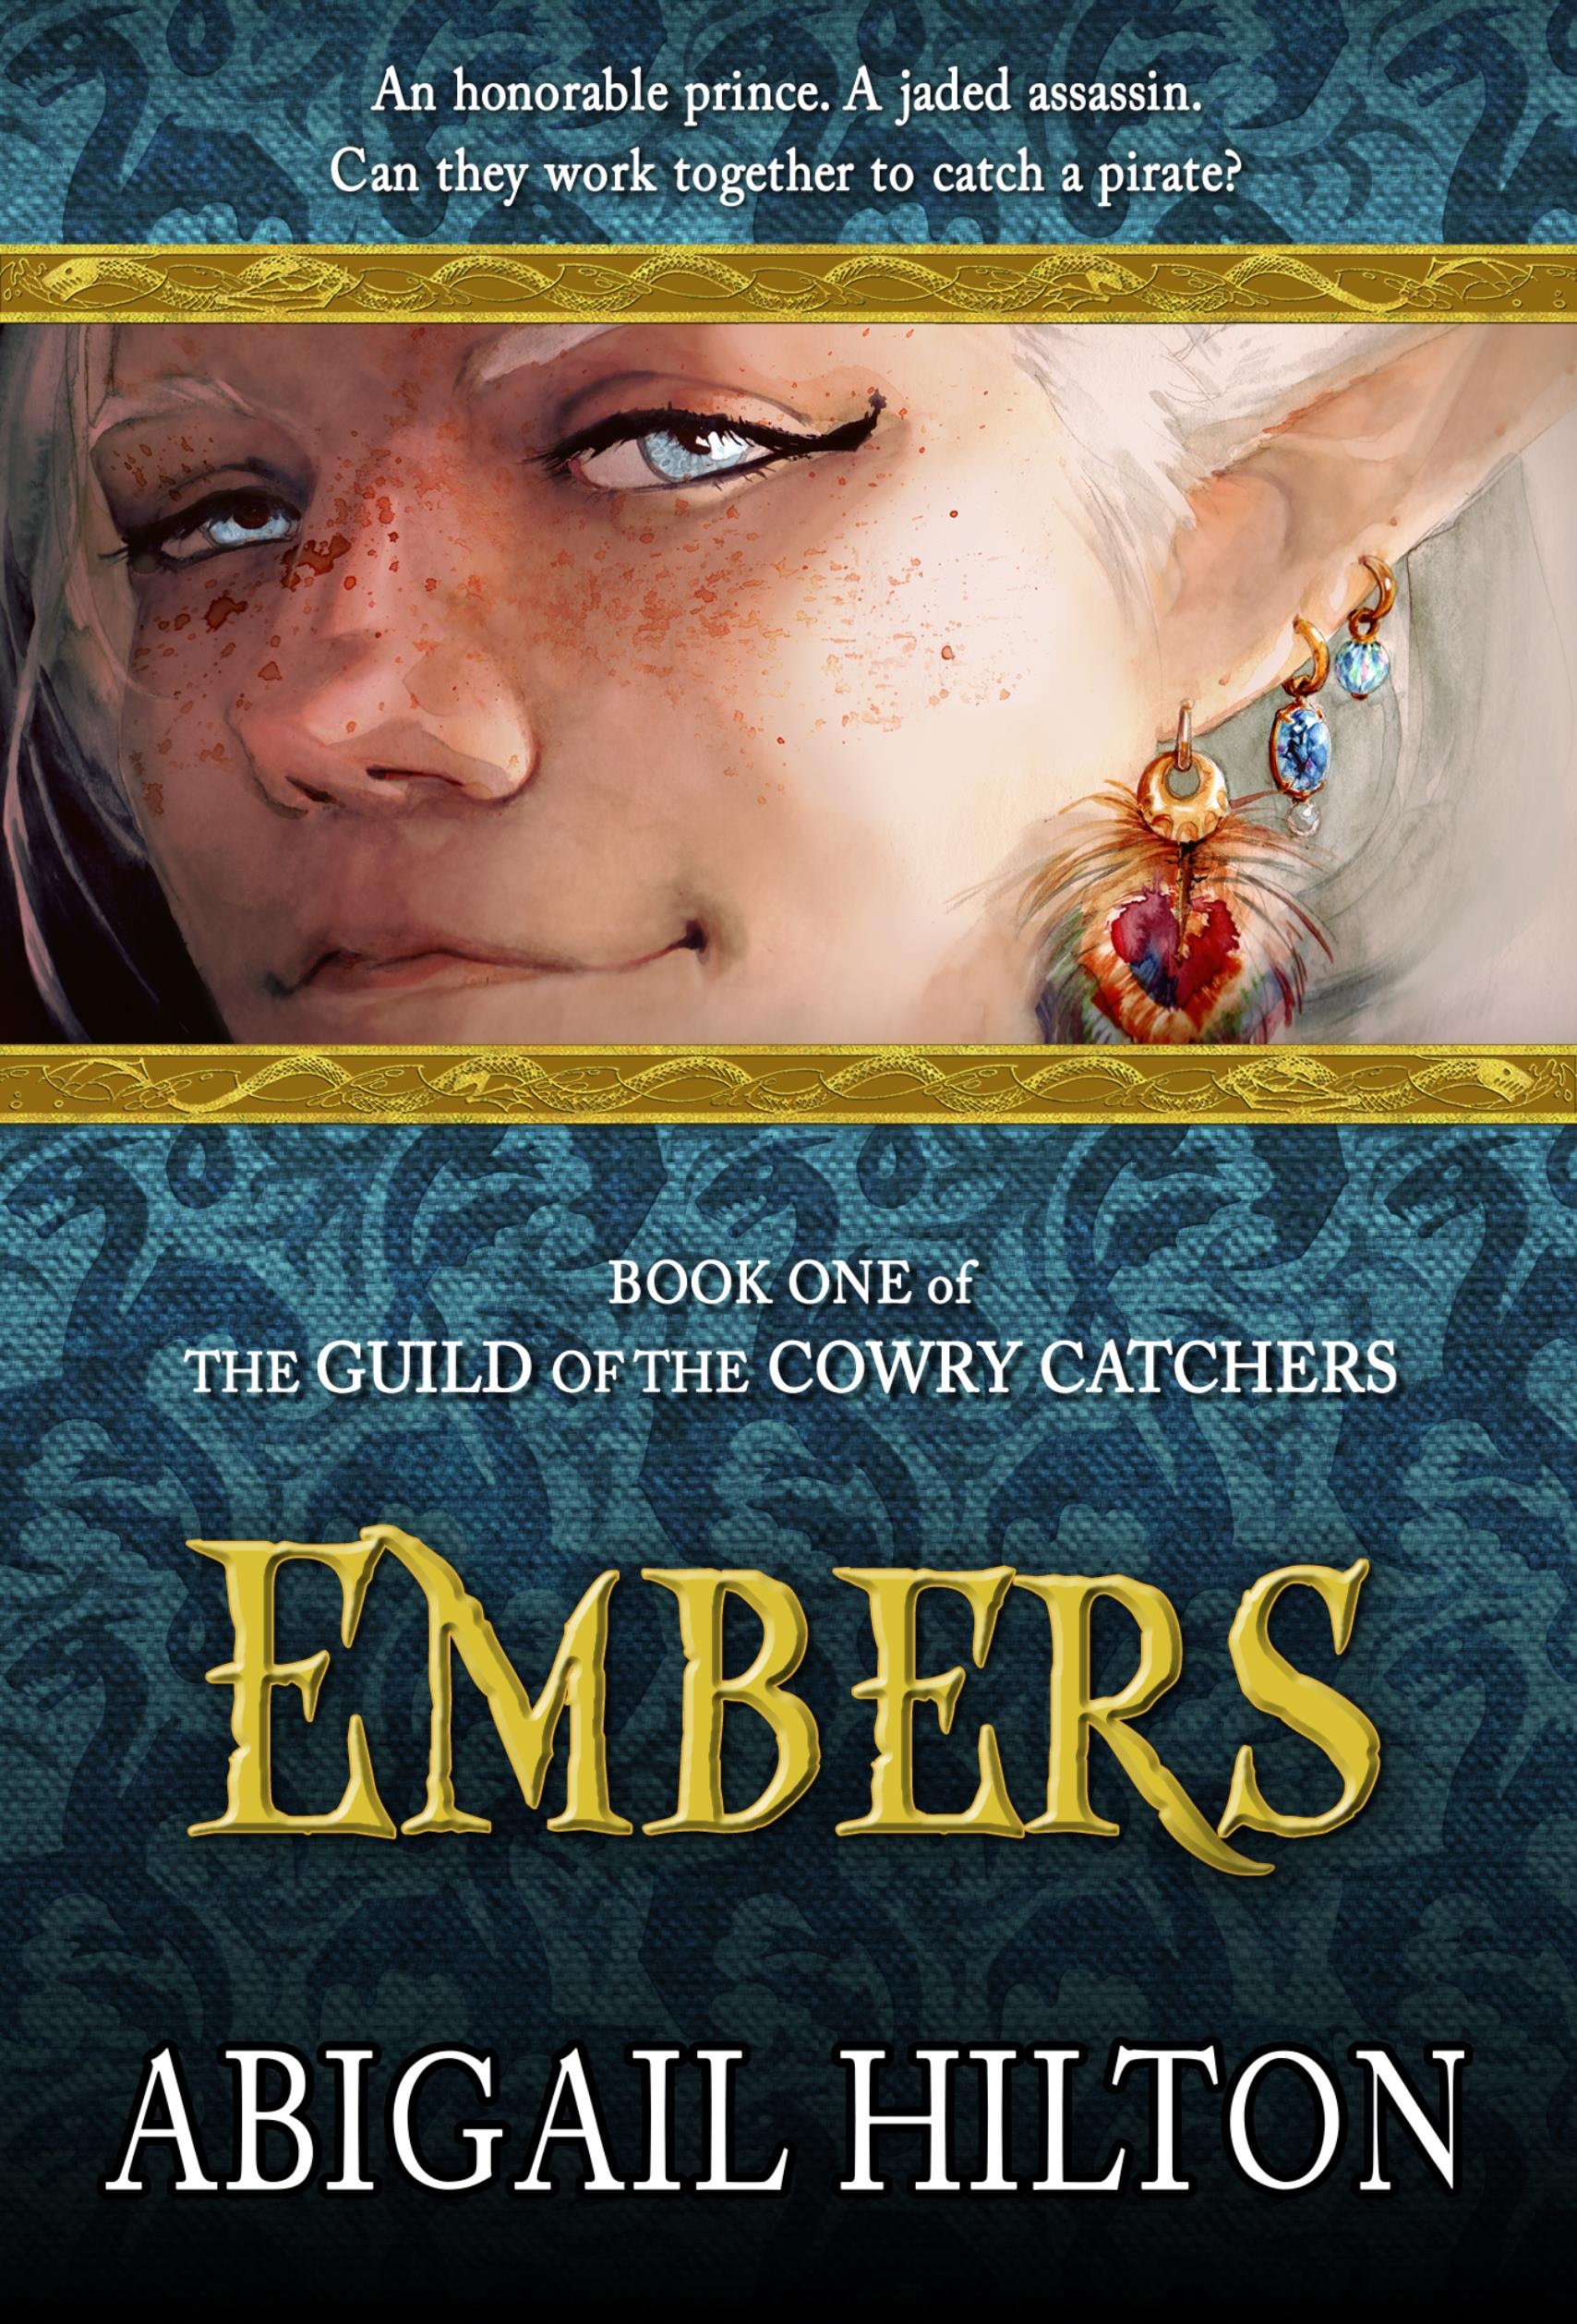 The Guild of the Cowry Catchers, Book 1: Embers, a story of pirates and Panamindorah (sst-ccvi)